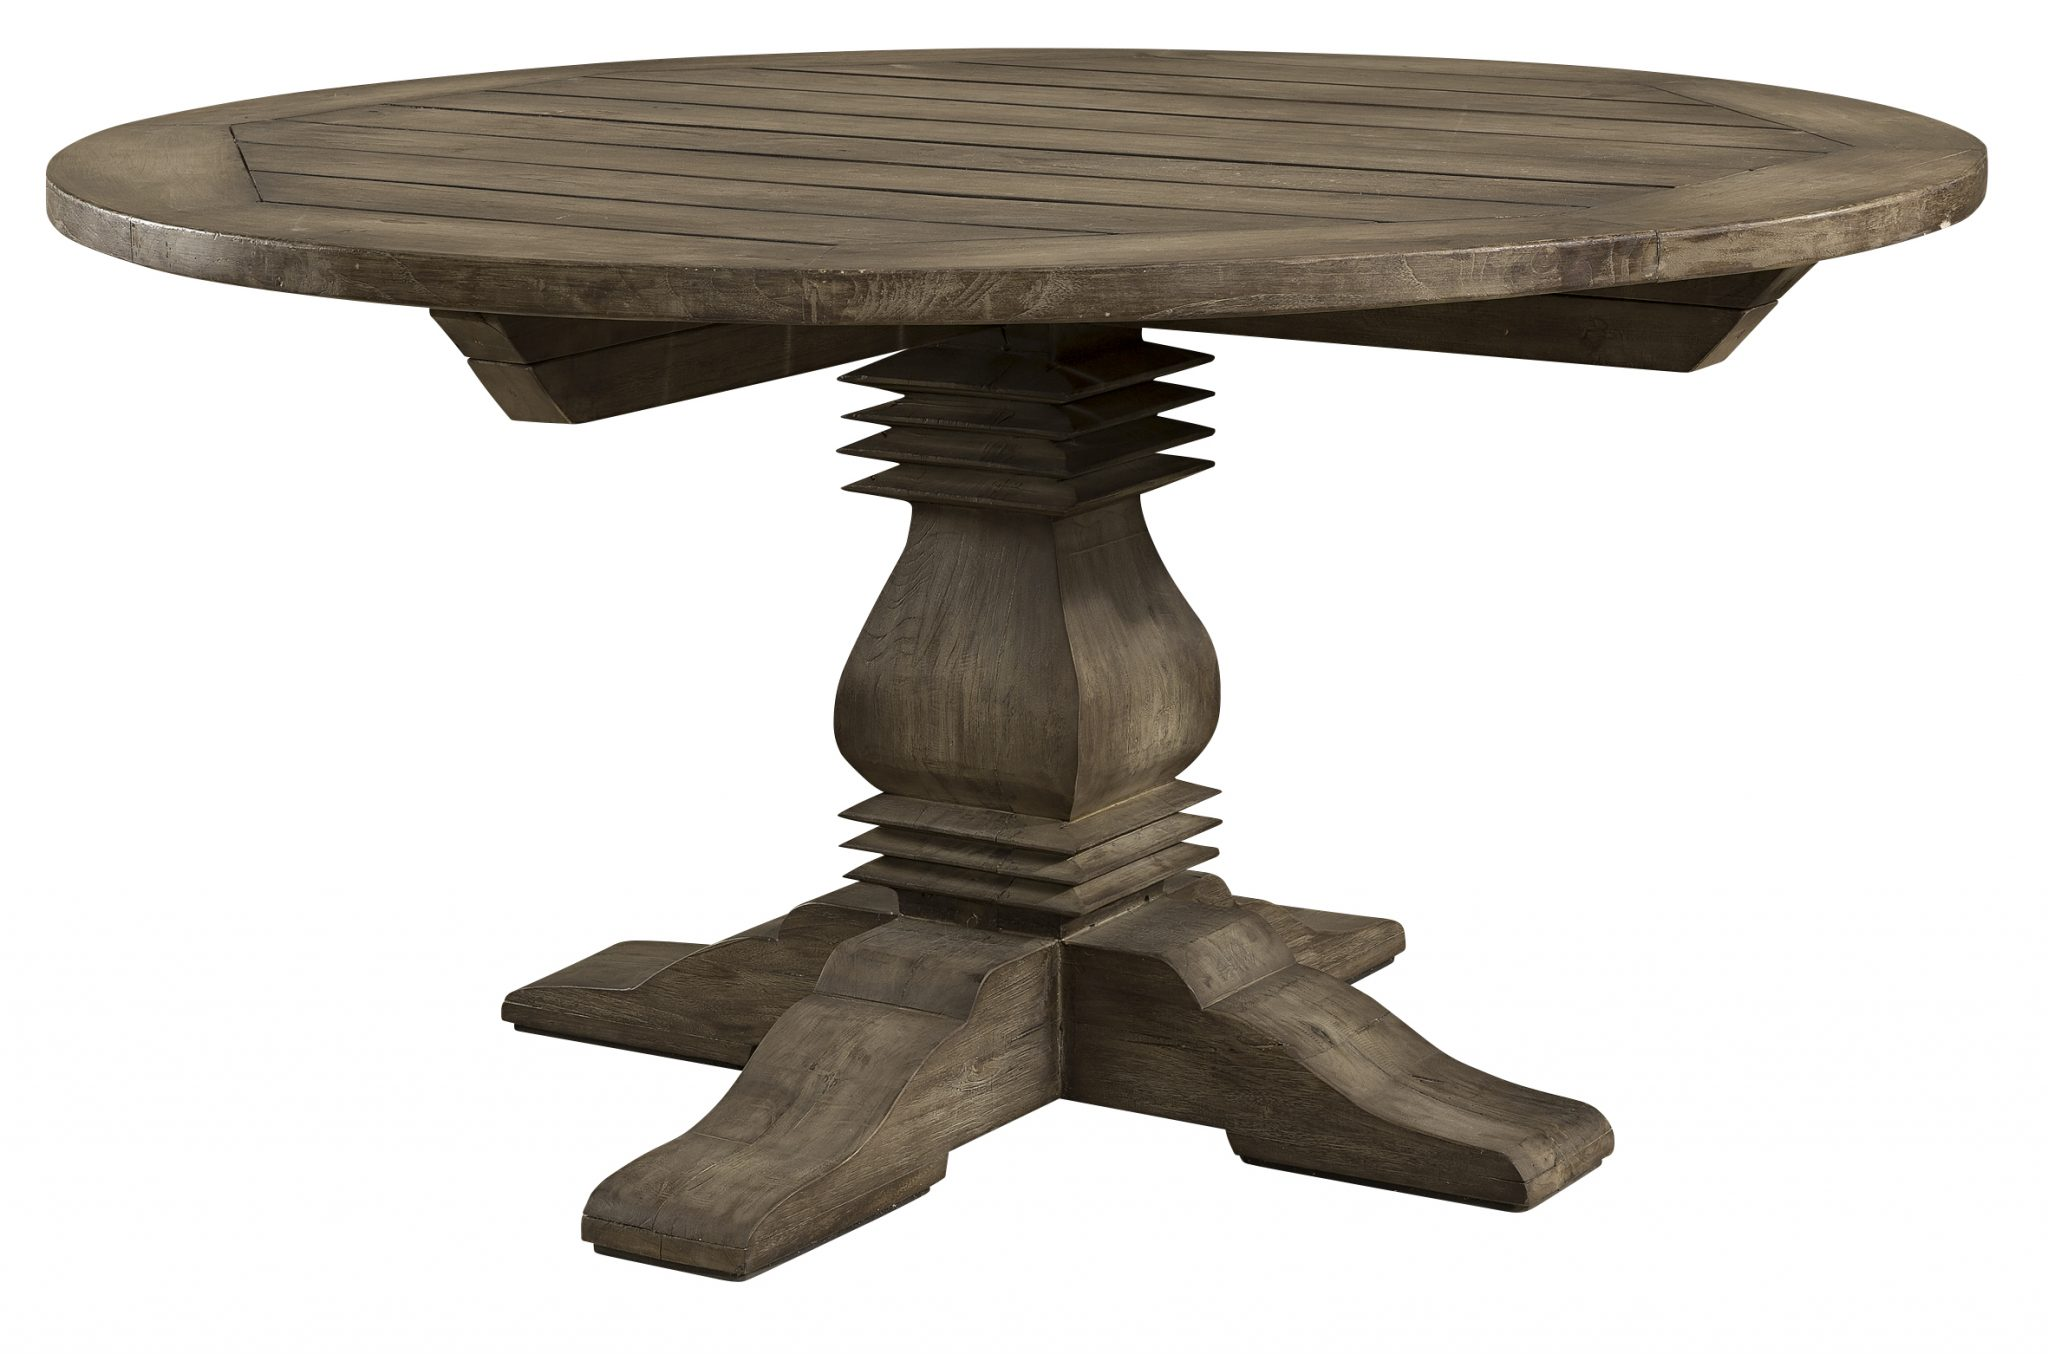 Vintage Outdoor Table Round Lg Artwood : 19 44945 from www.artwoodfurniture.co.nz size 2362 x 1562 jpeg 1030kB